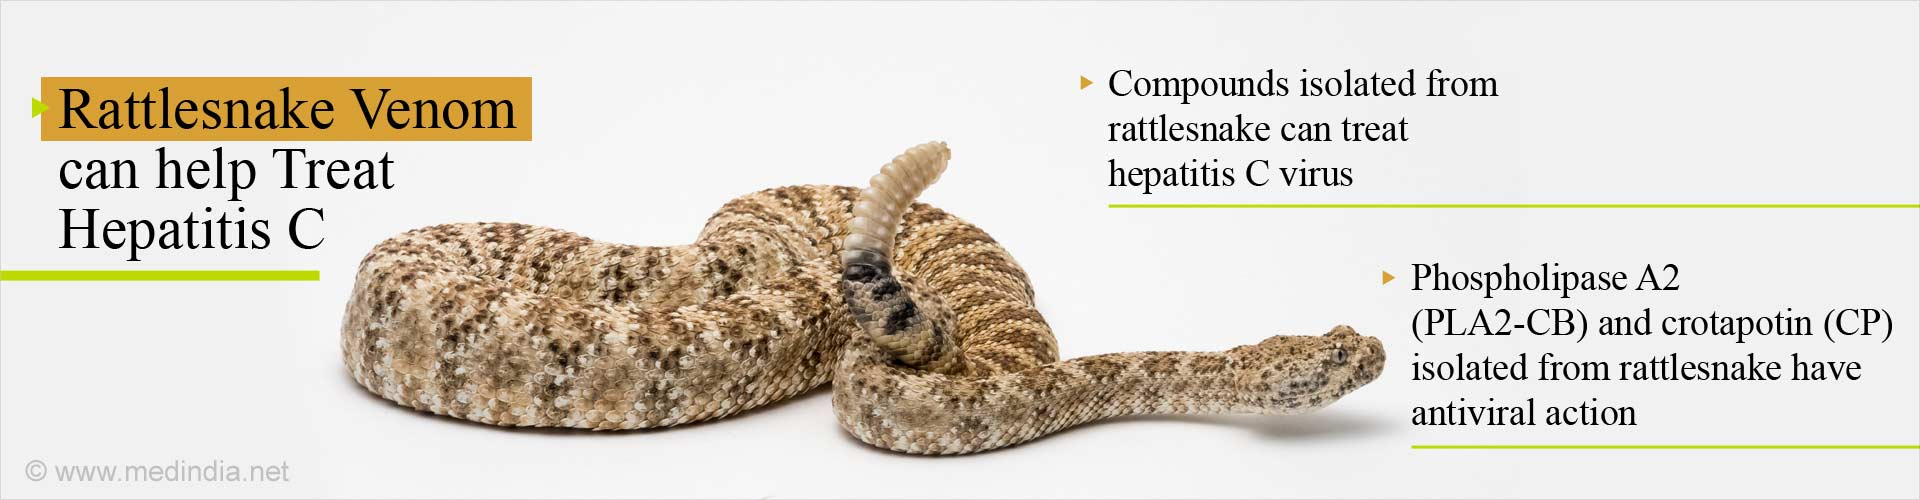 Treat Hepatitis C With Compounds from Rattlesnake Venom